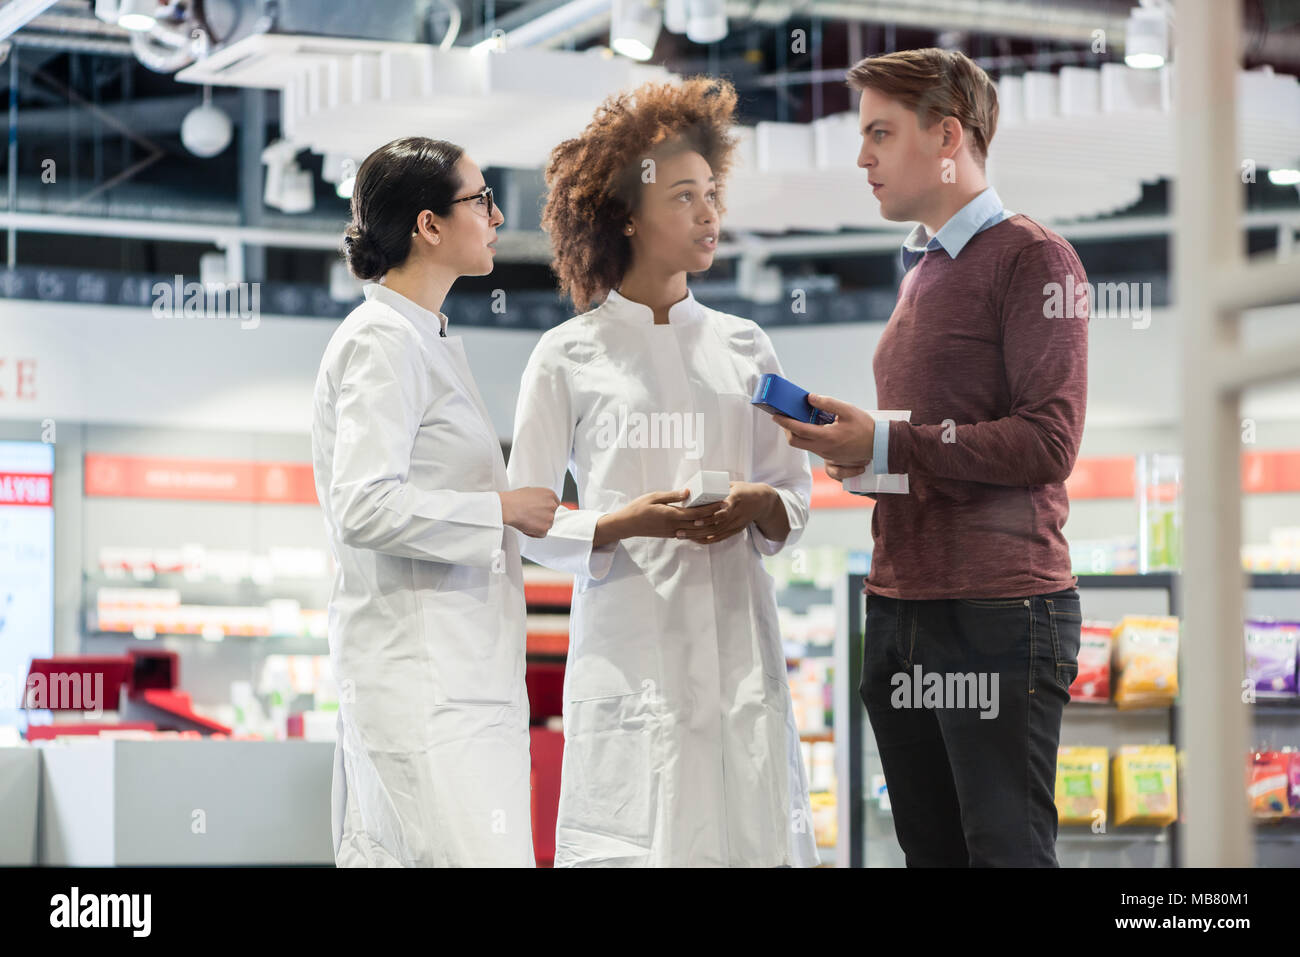 Young man asking for opinion from pharmacists regarding prescribtion - Stock Image